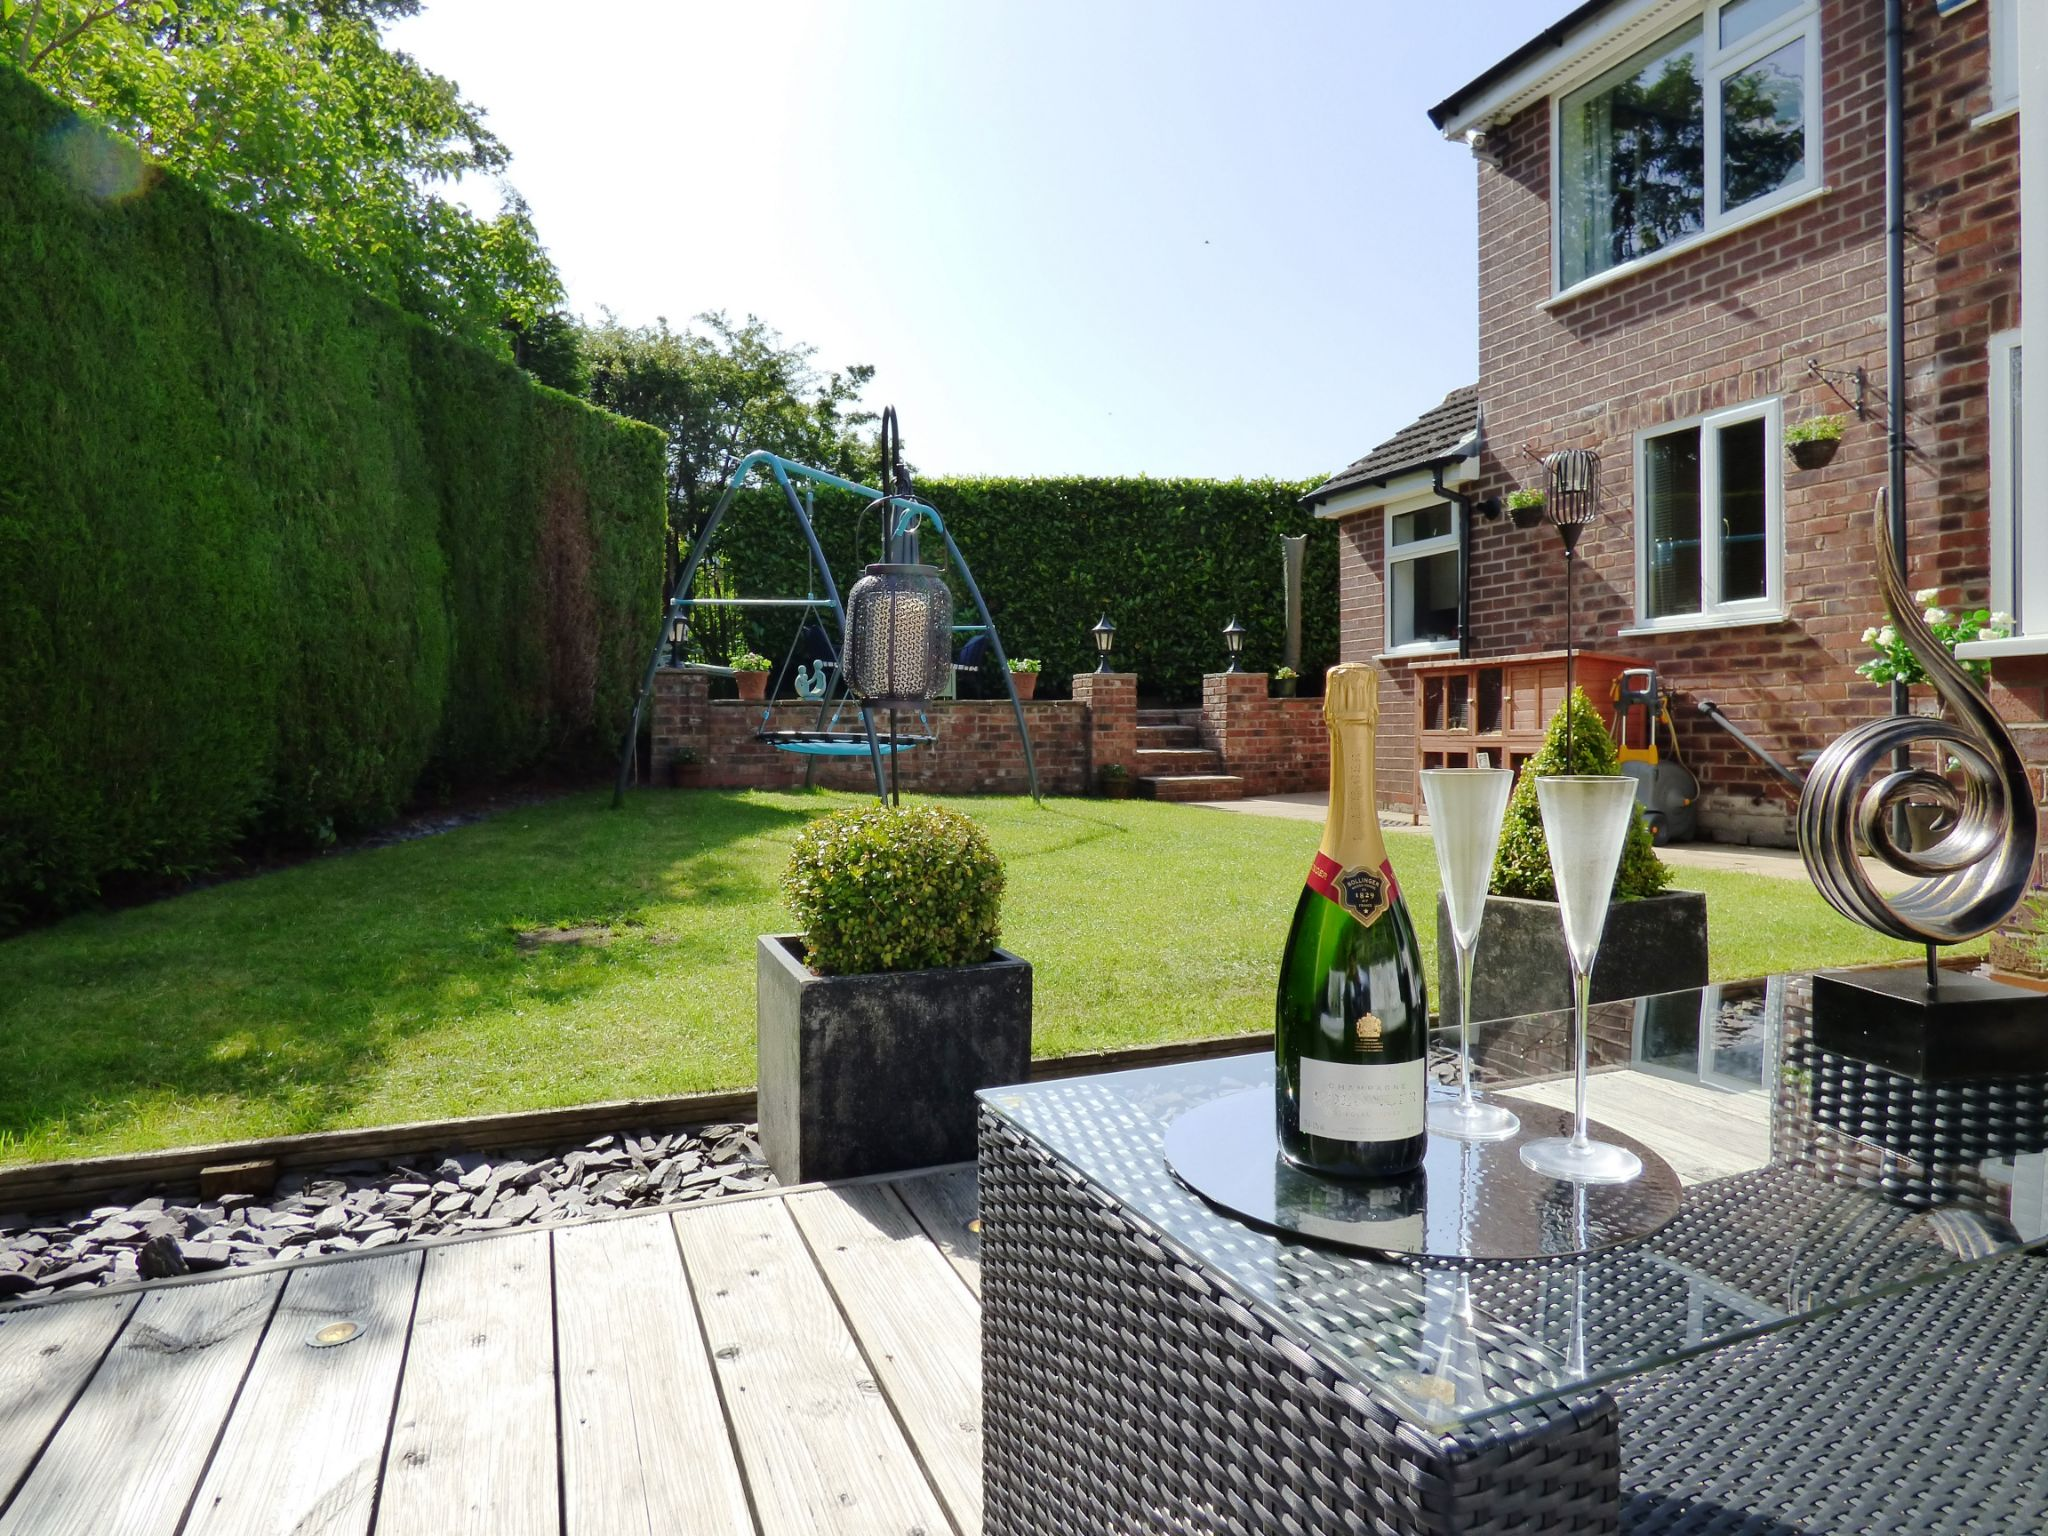 5 Bedroom Semi-detached House For Sale - Photograph 10